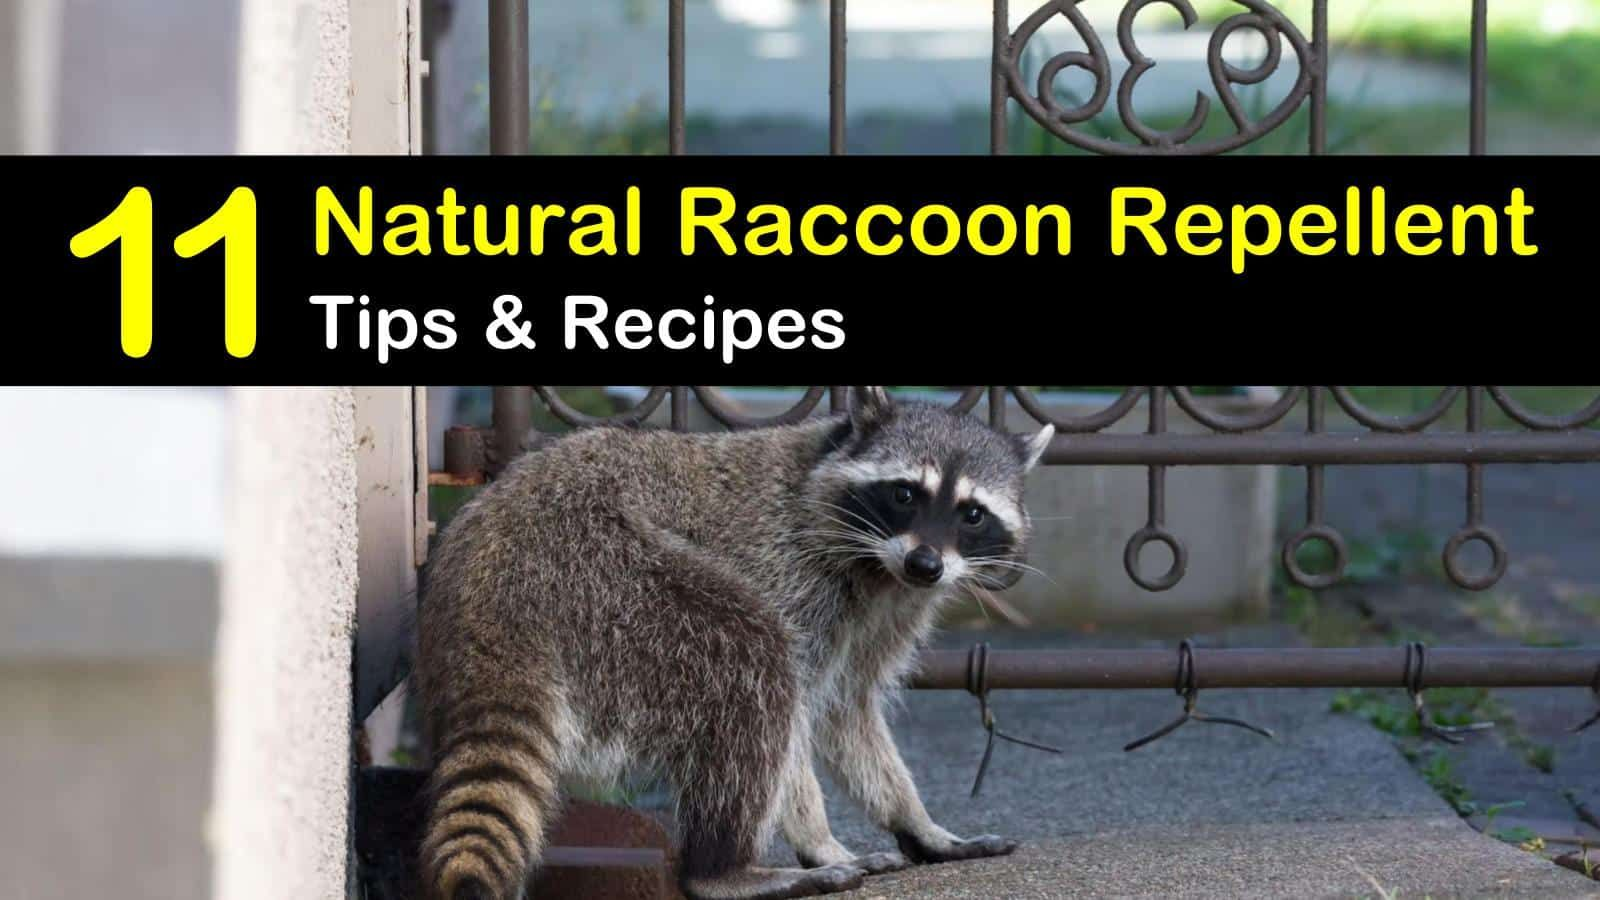 How do you get rid of raccoons on your deck